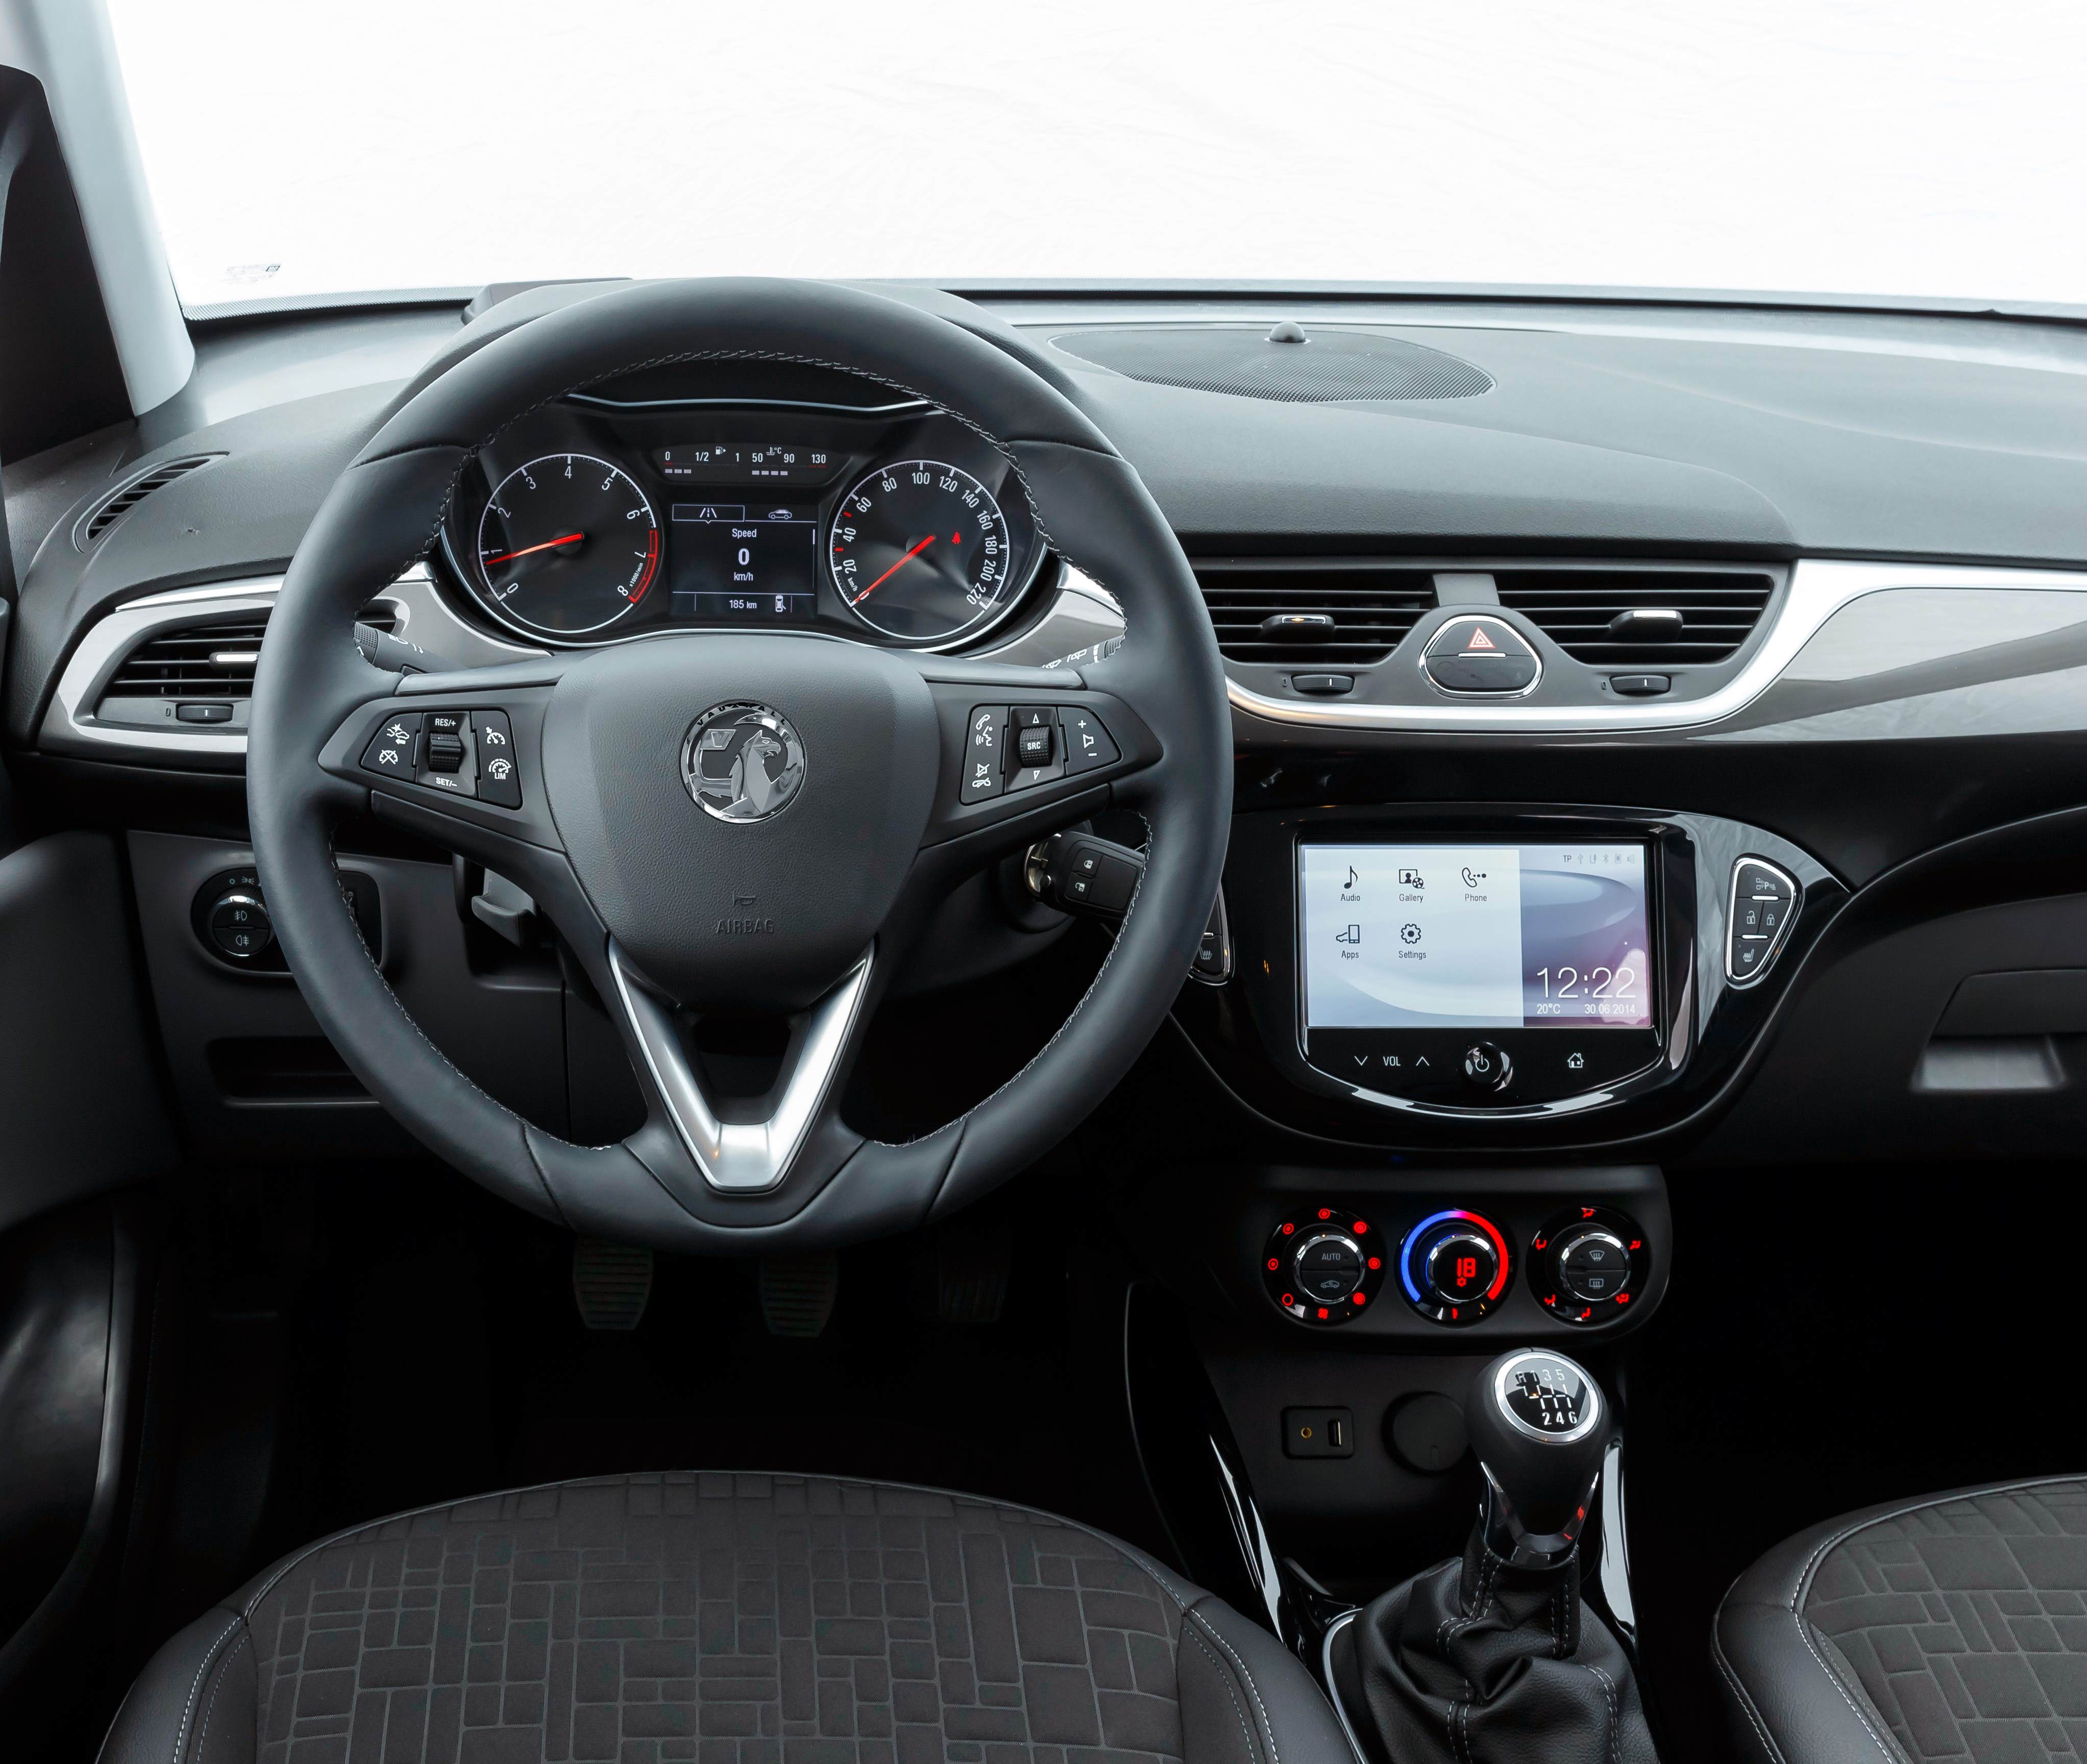 Vauxhall opel corsa fourth gen supermini unveiled image for Interior opel corsa 2017